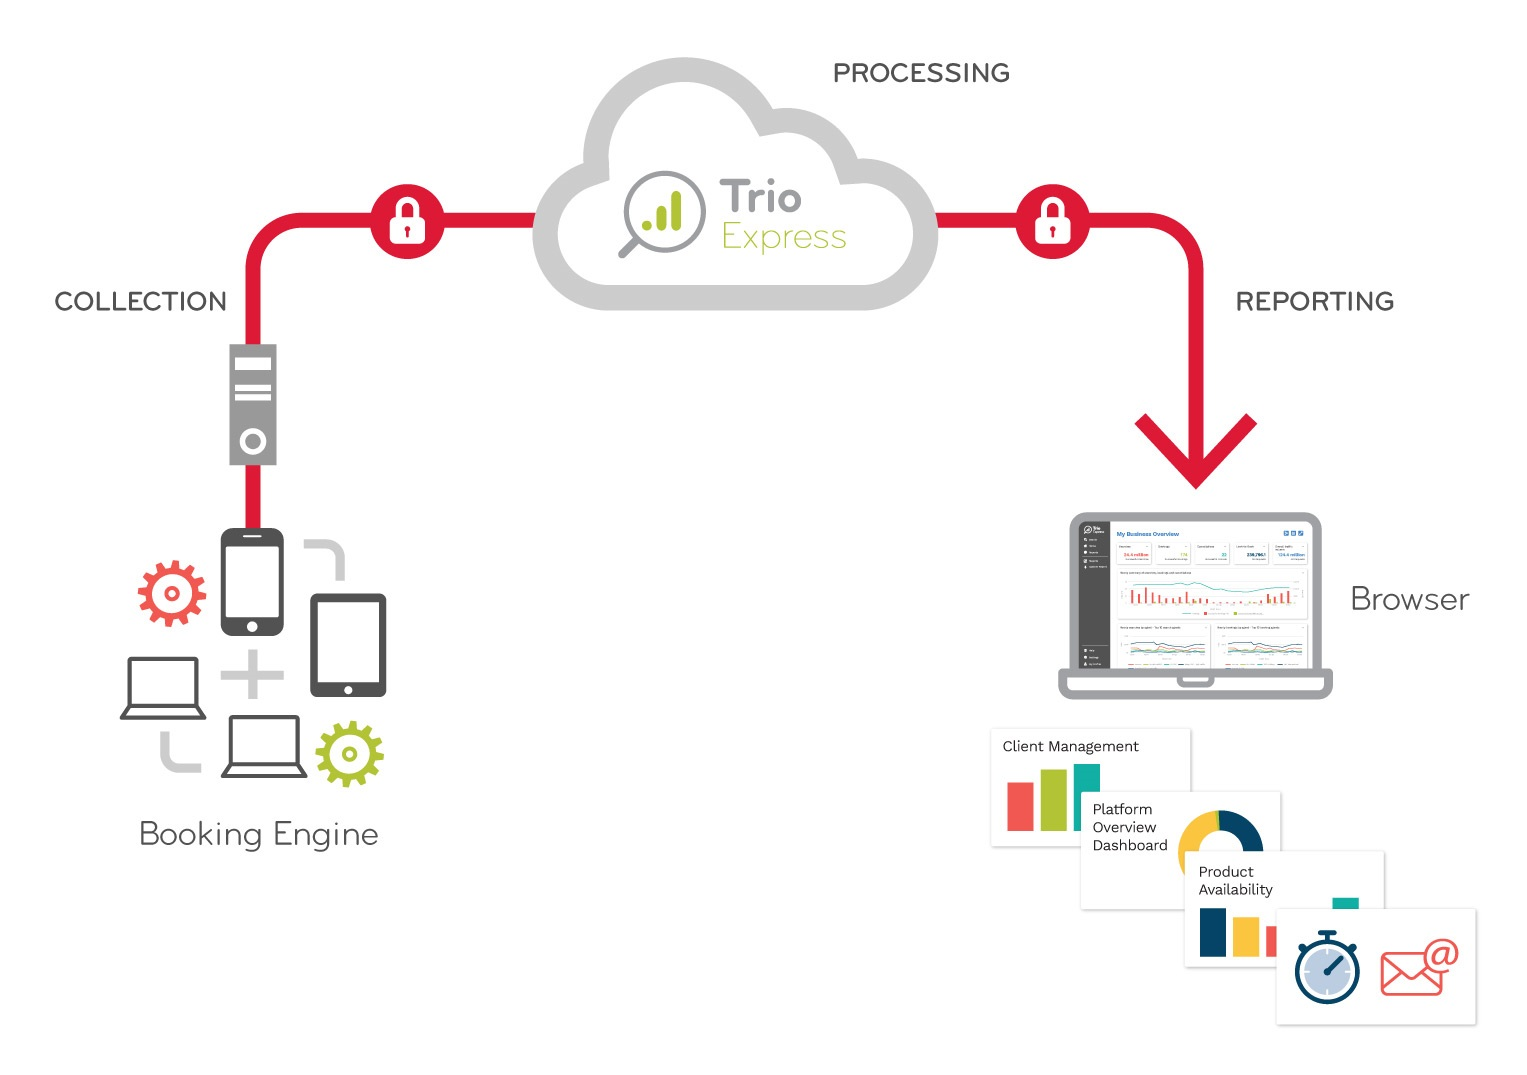 Trio Express Overview